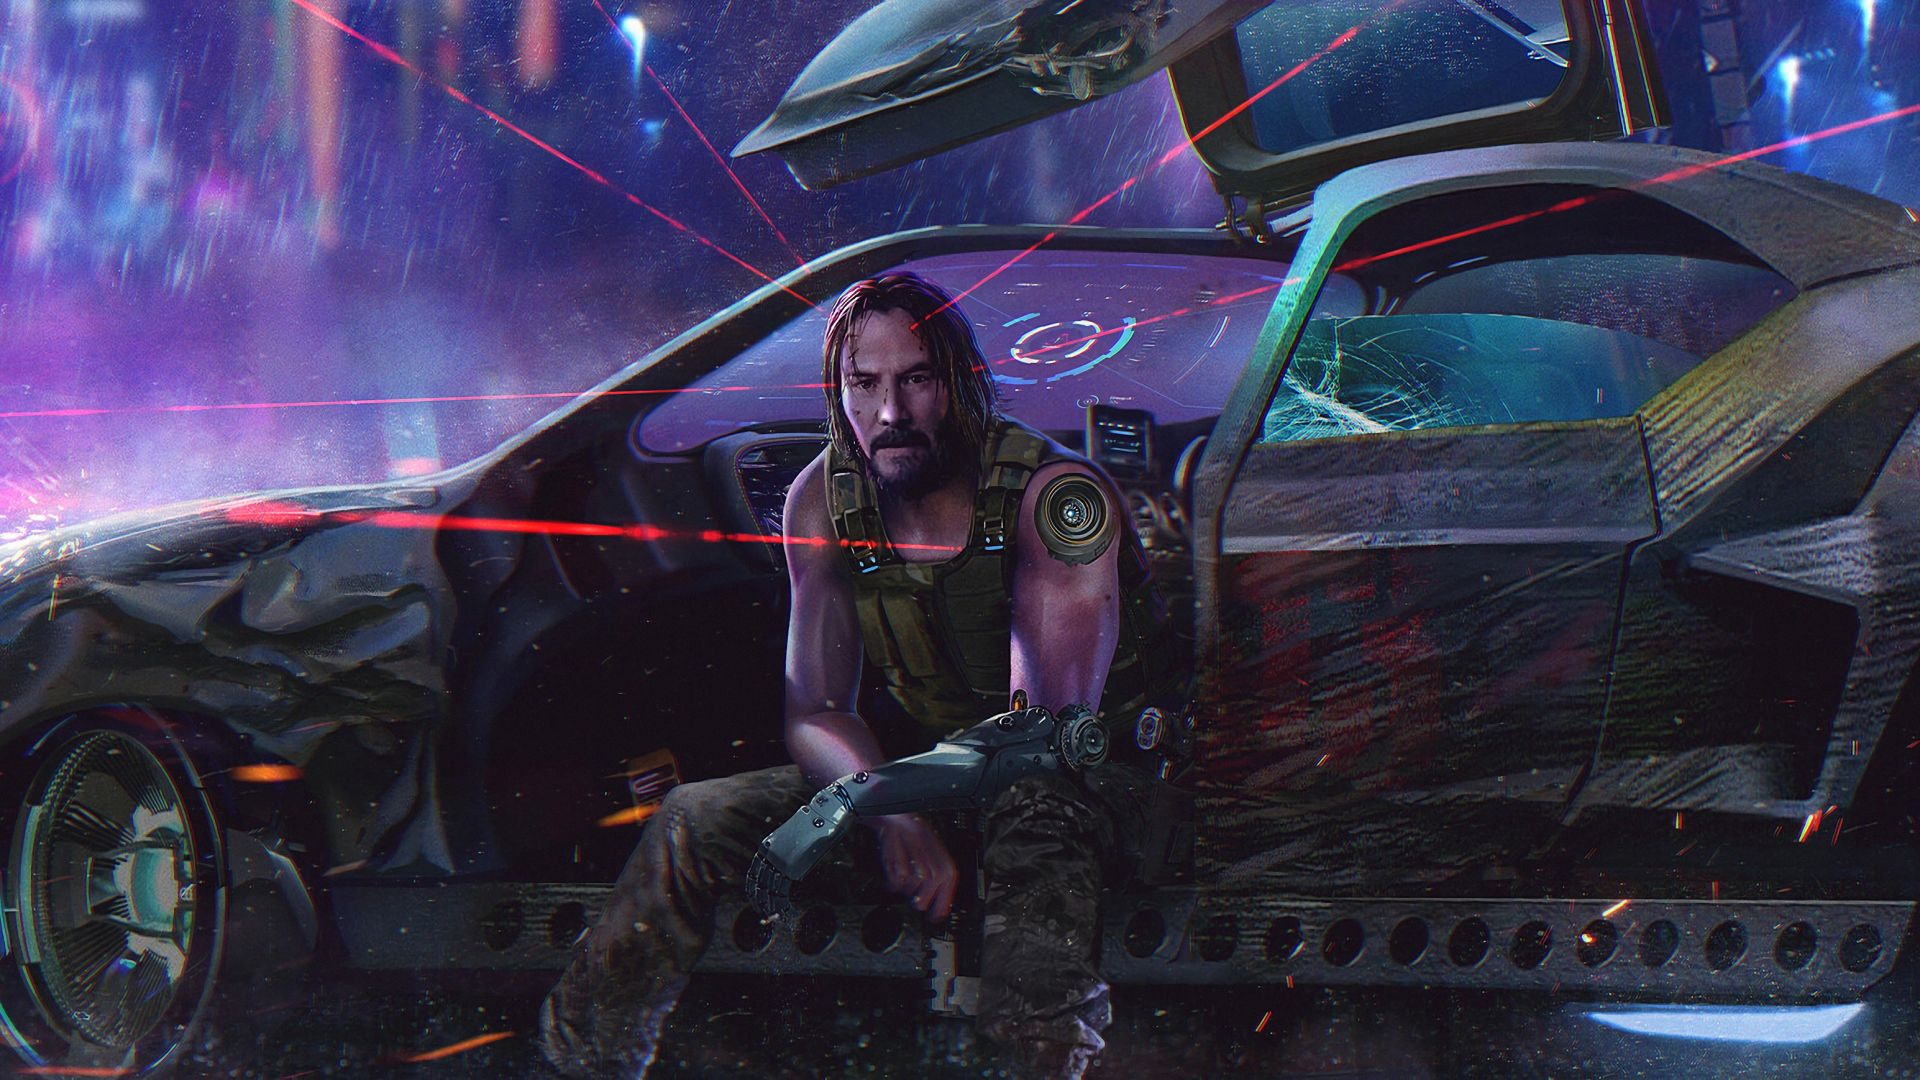 Desktop wallpaper cyberpunk 2077 keanu reeves video game 2019 1920x1080